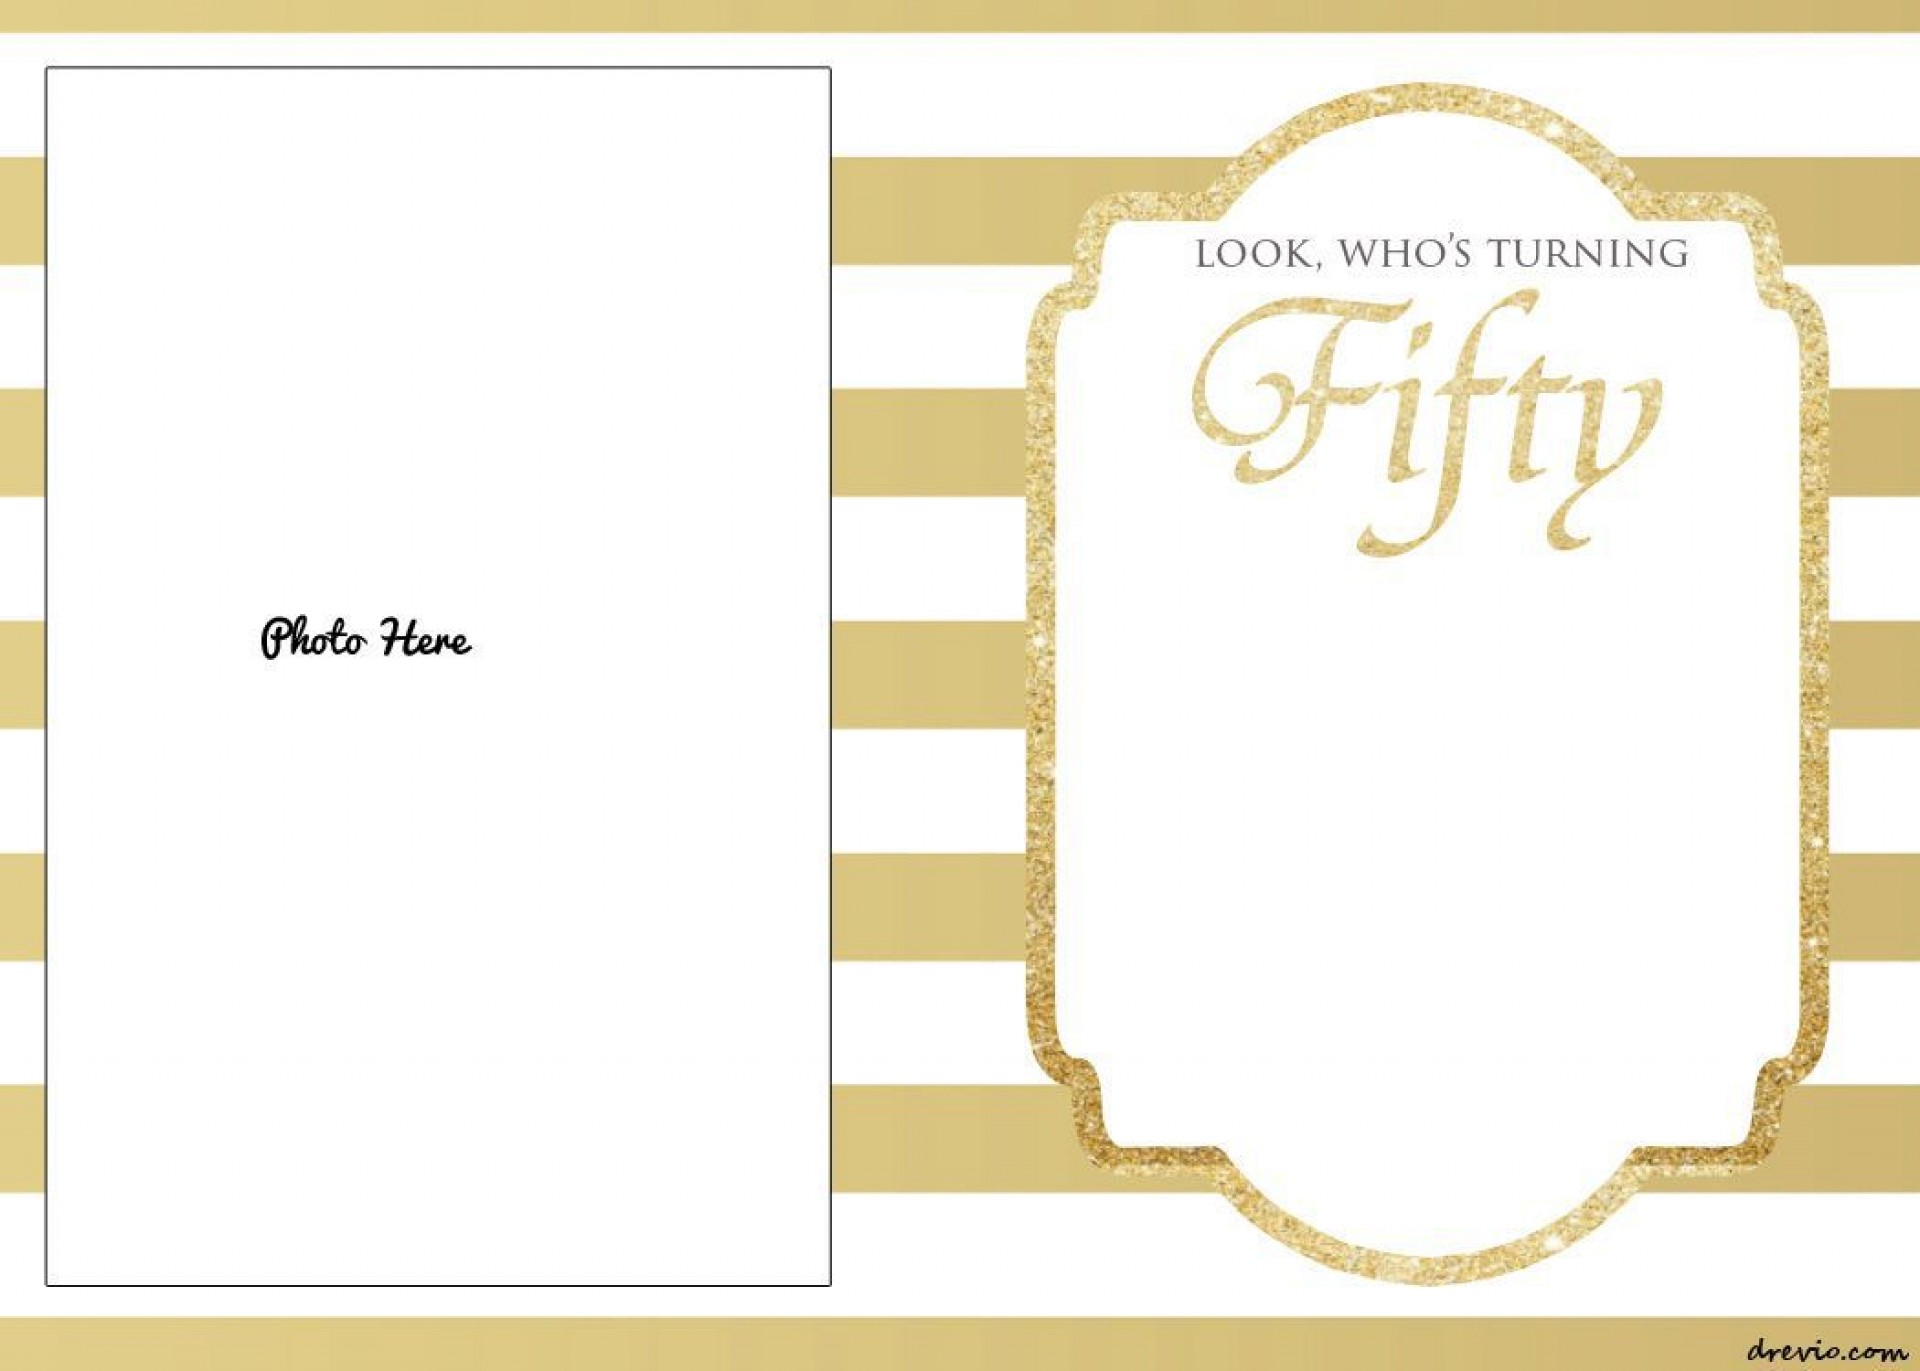 006 Exceptional Free 50th Anniversary Invitation Template For Word High Resolution 1920